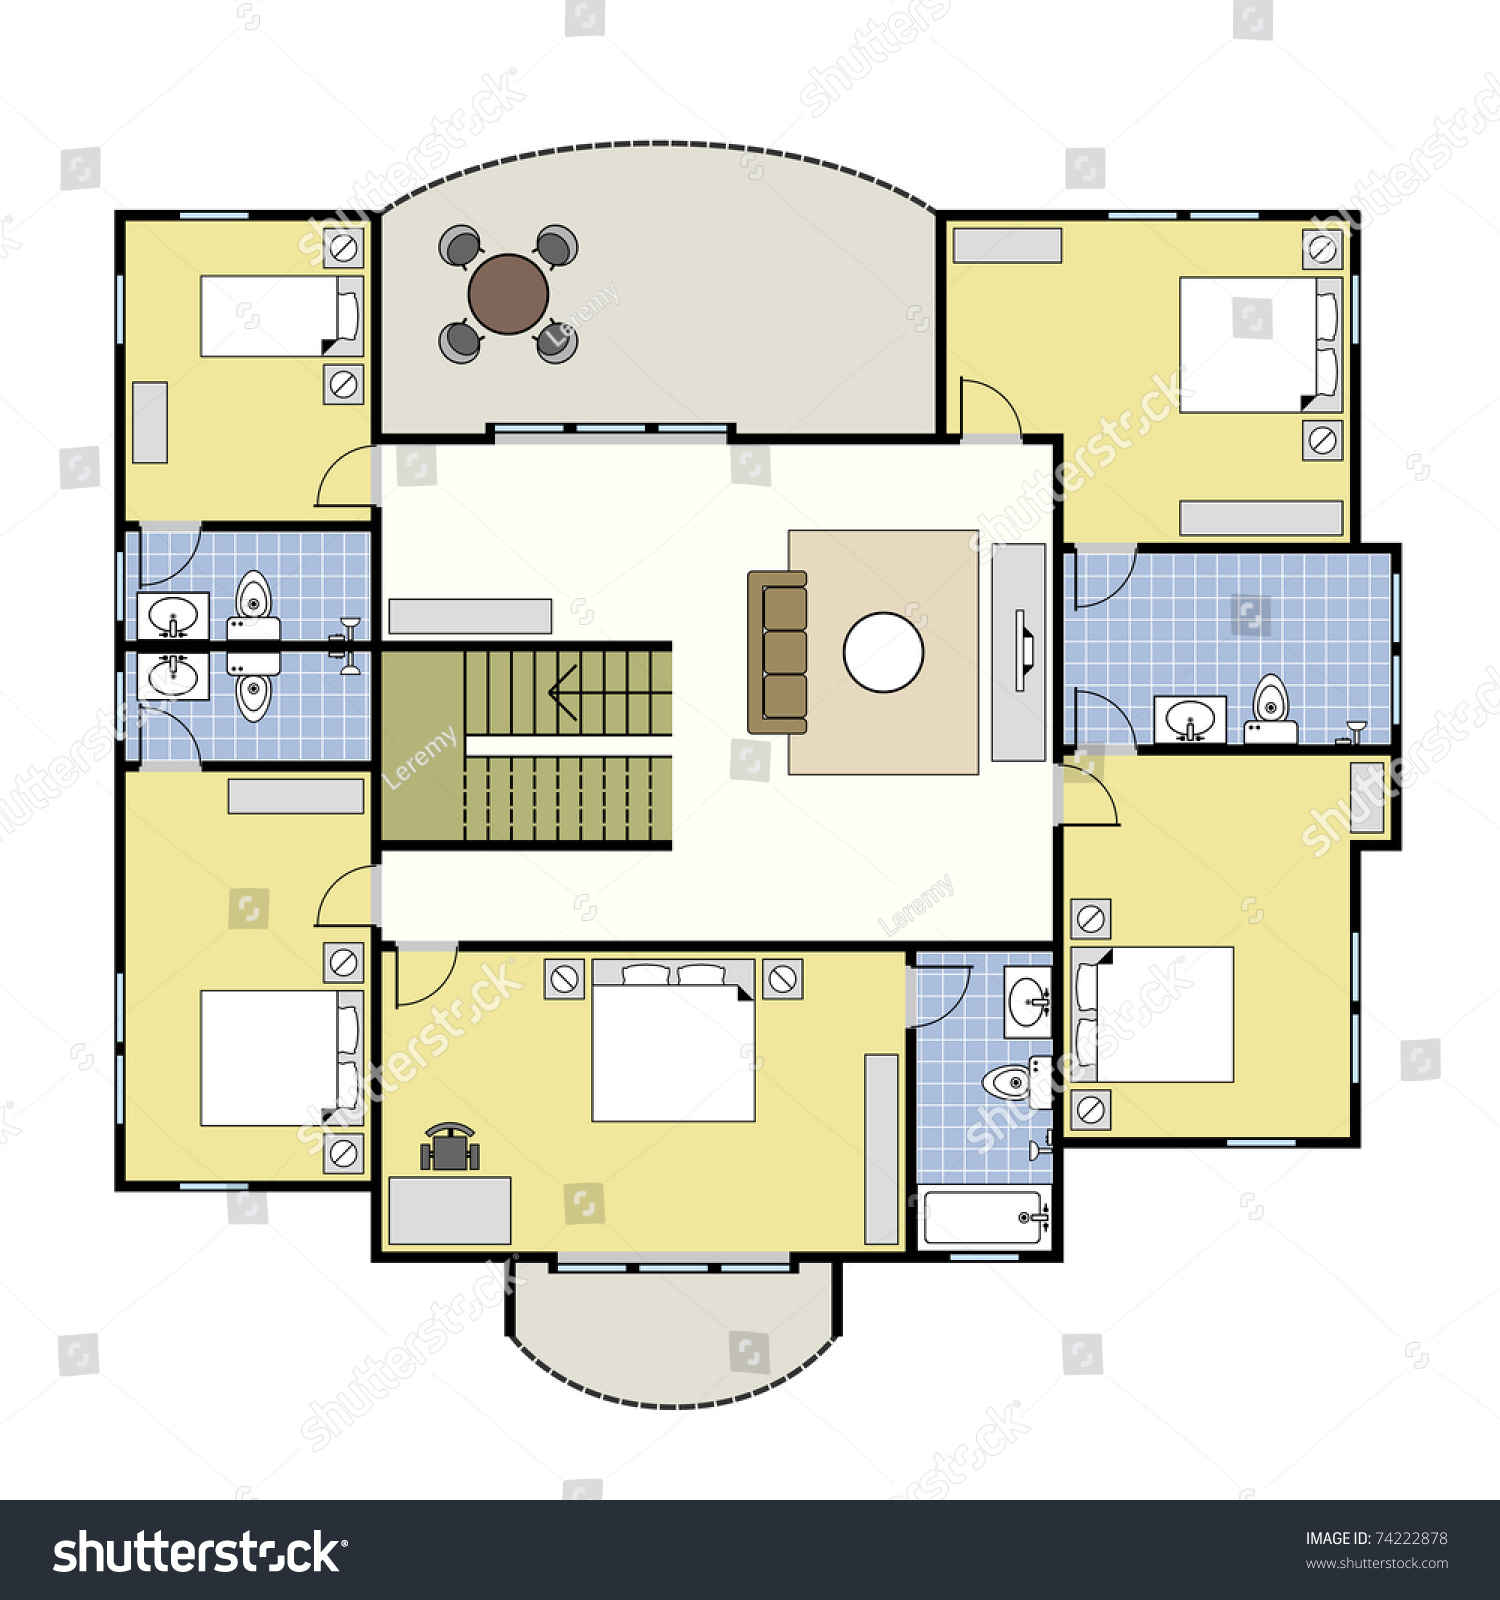 First second floor plan floorplan house stock vector for Home to build plans